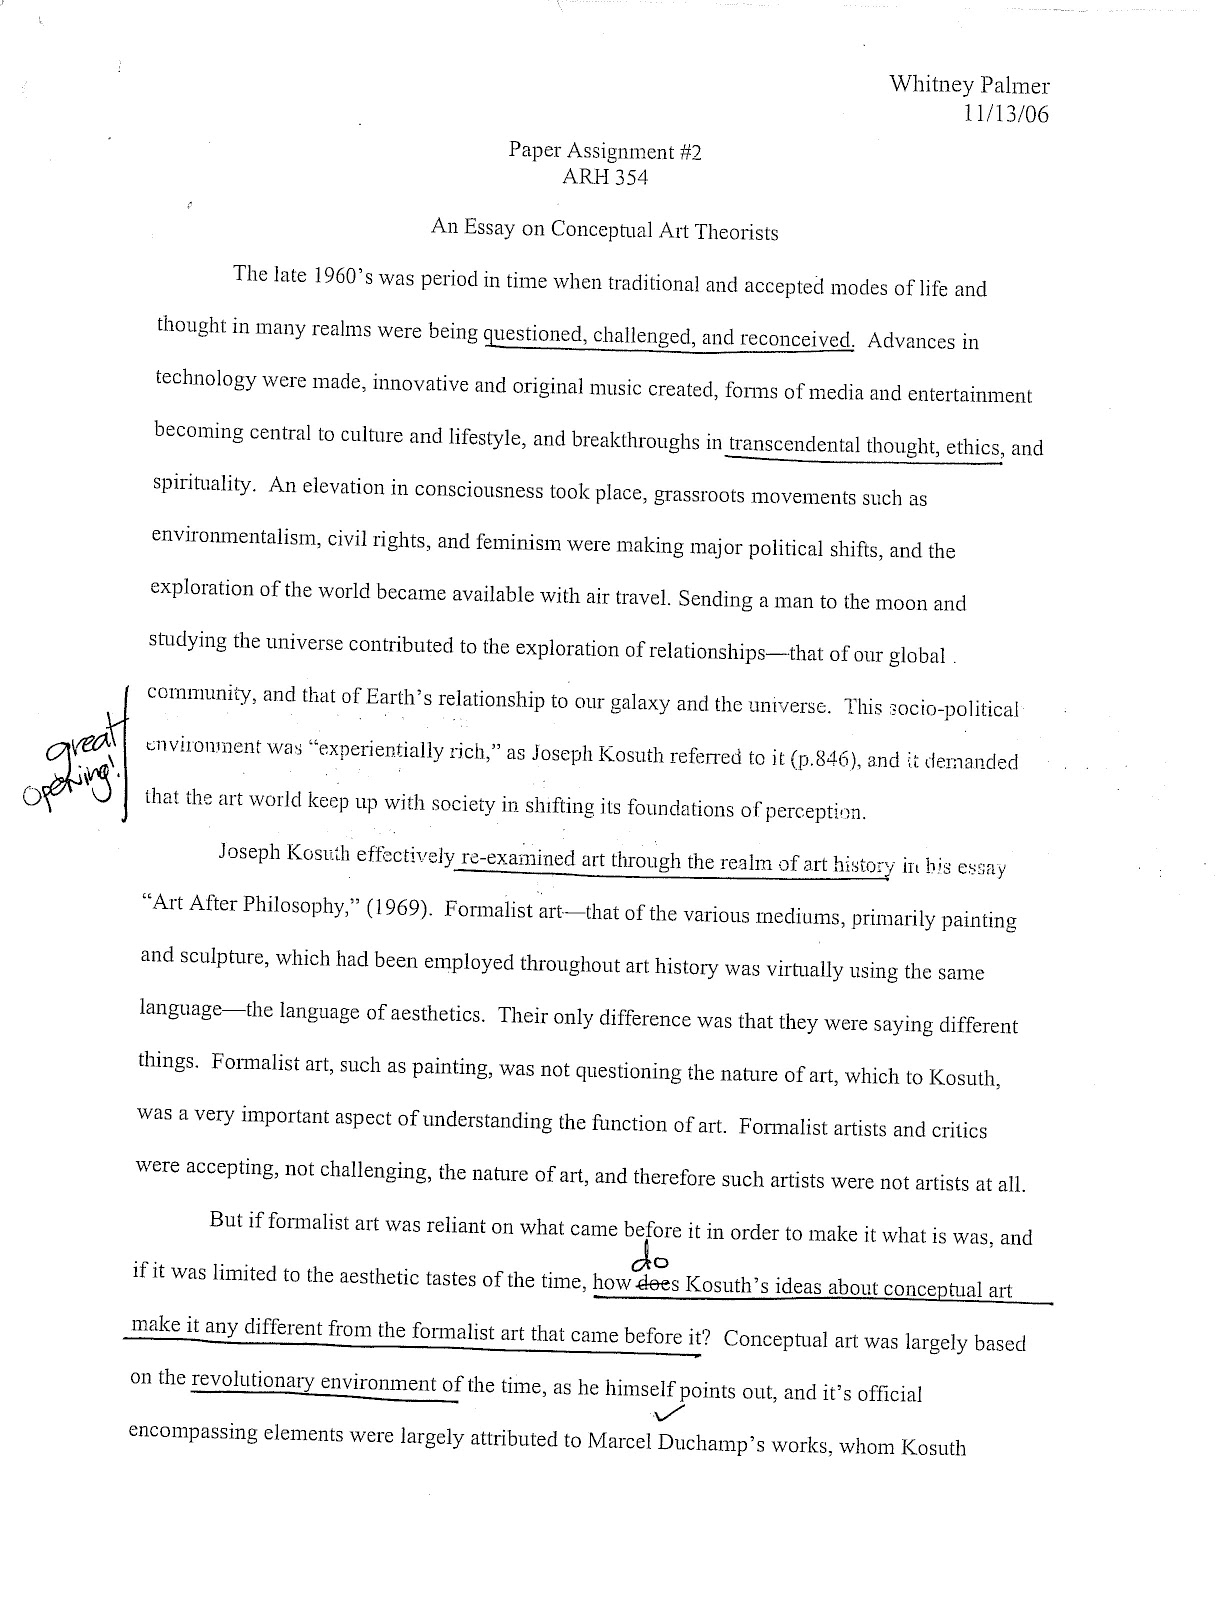 essay about ancient art history essays art history essays  art history essays art history essays compucenter the aim of this essay from art history fall